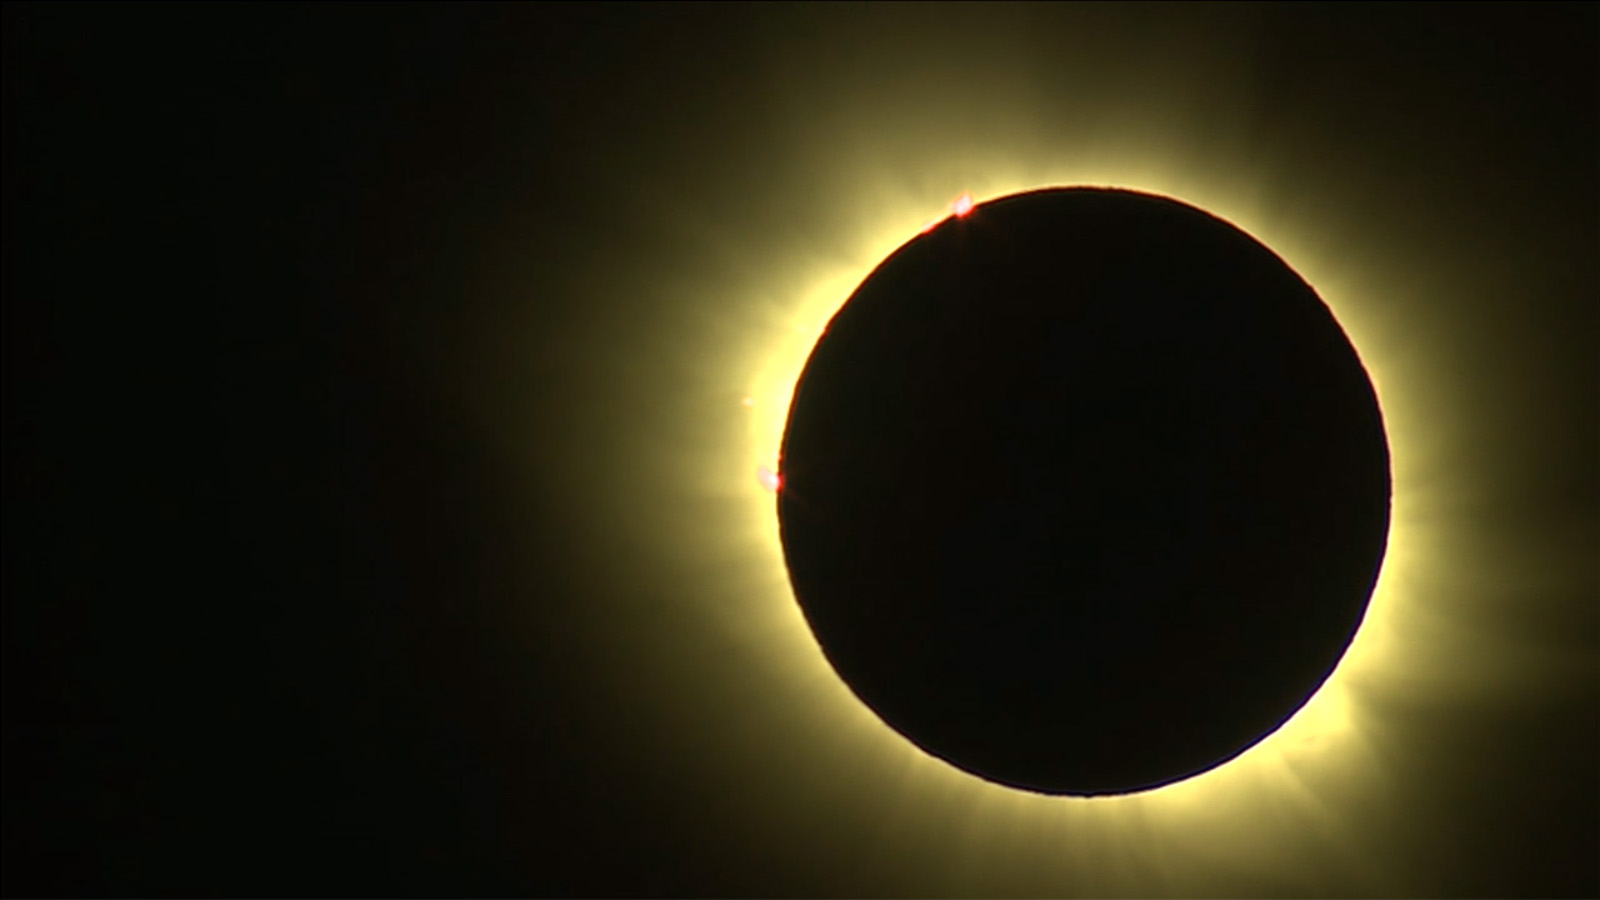 Total Solar Eclipse of 2015 in Amazing Photos